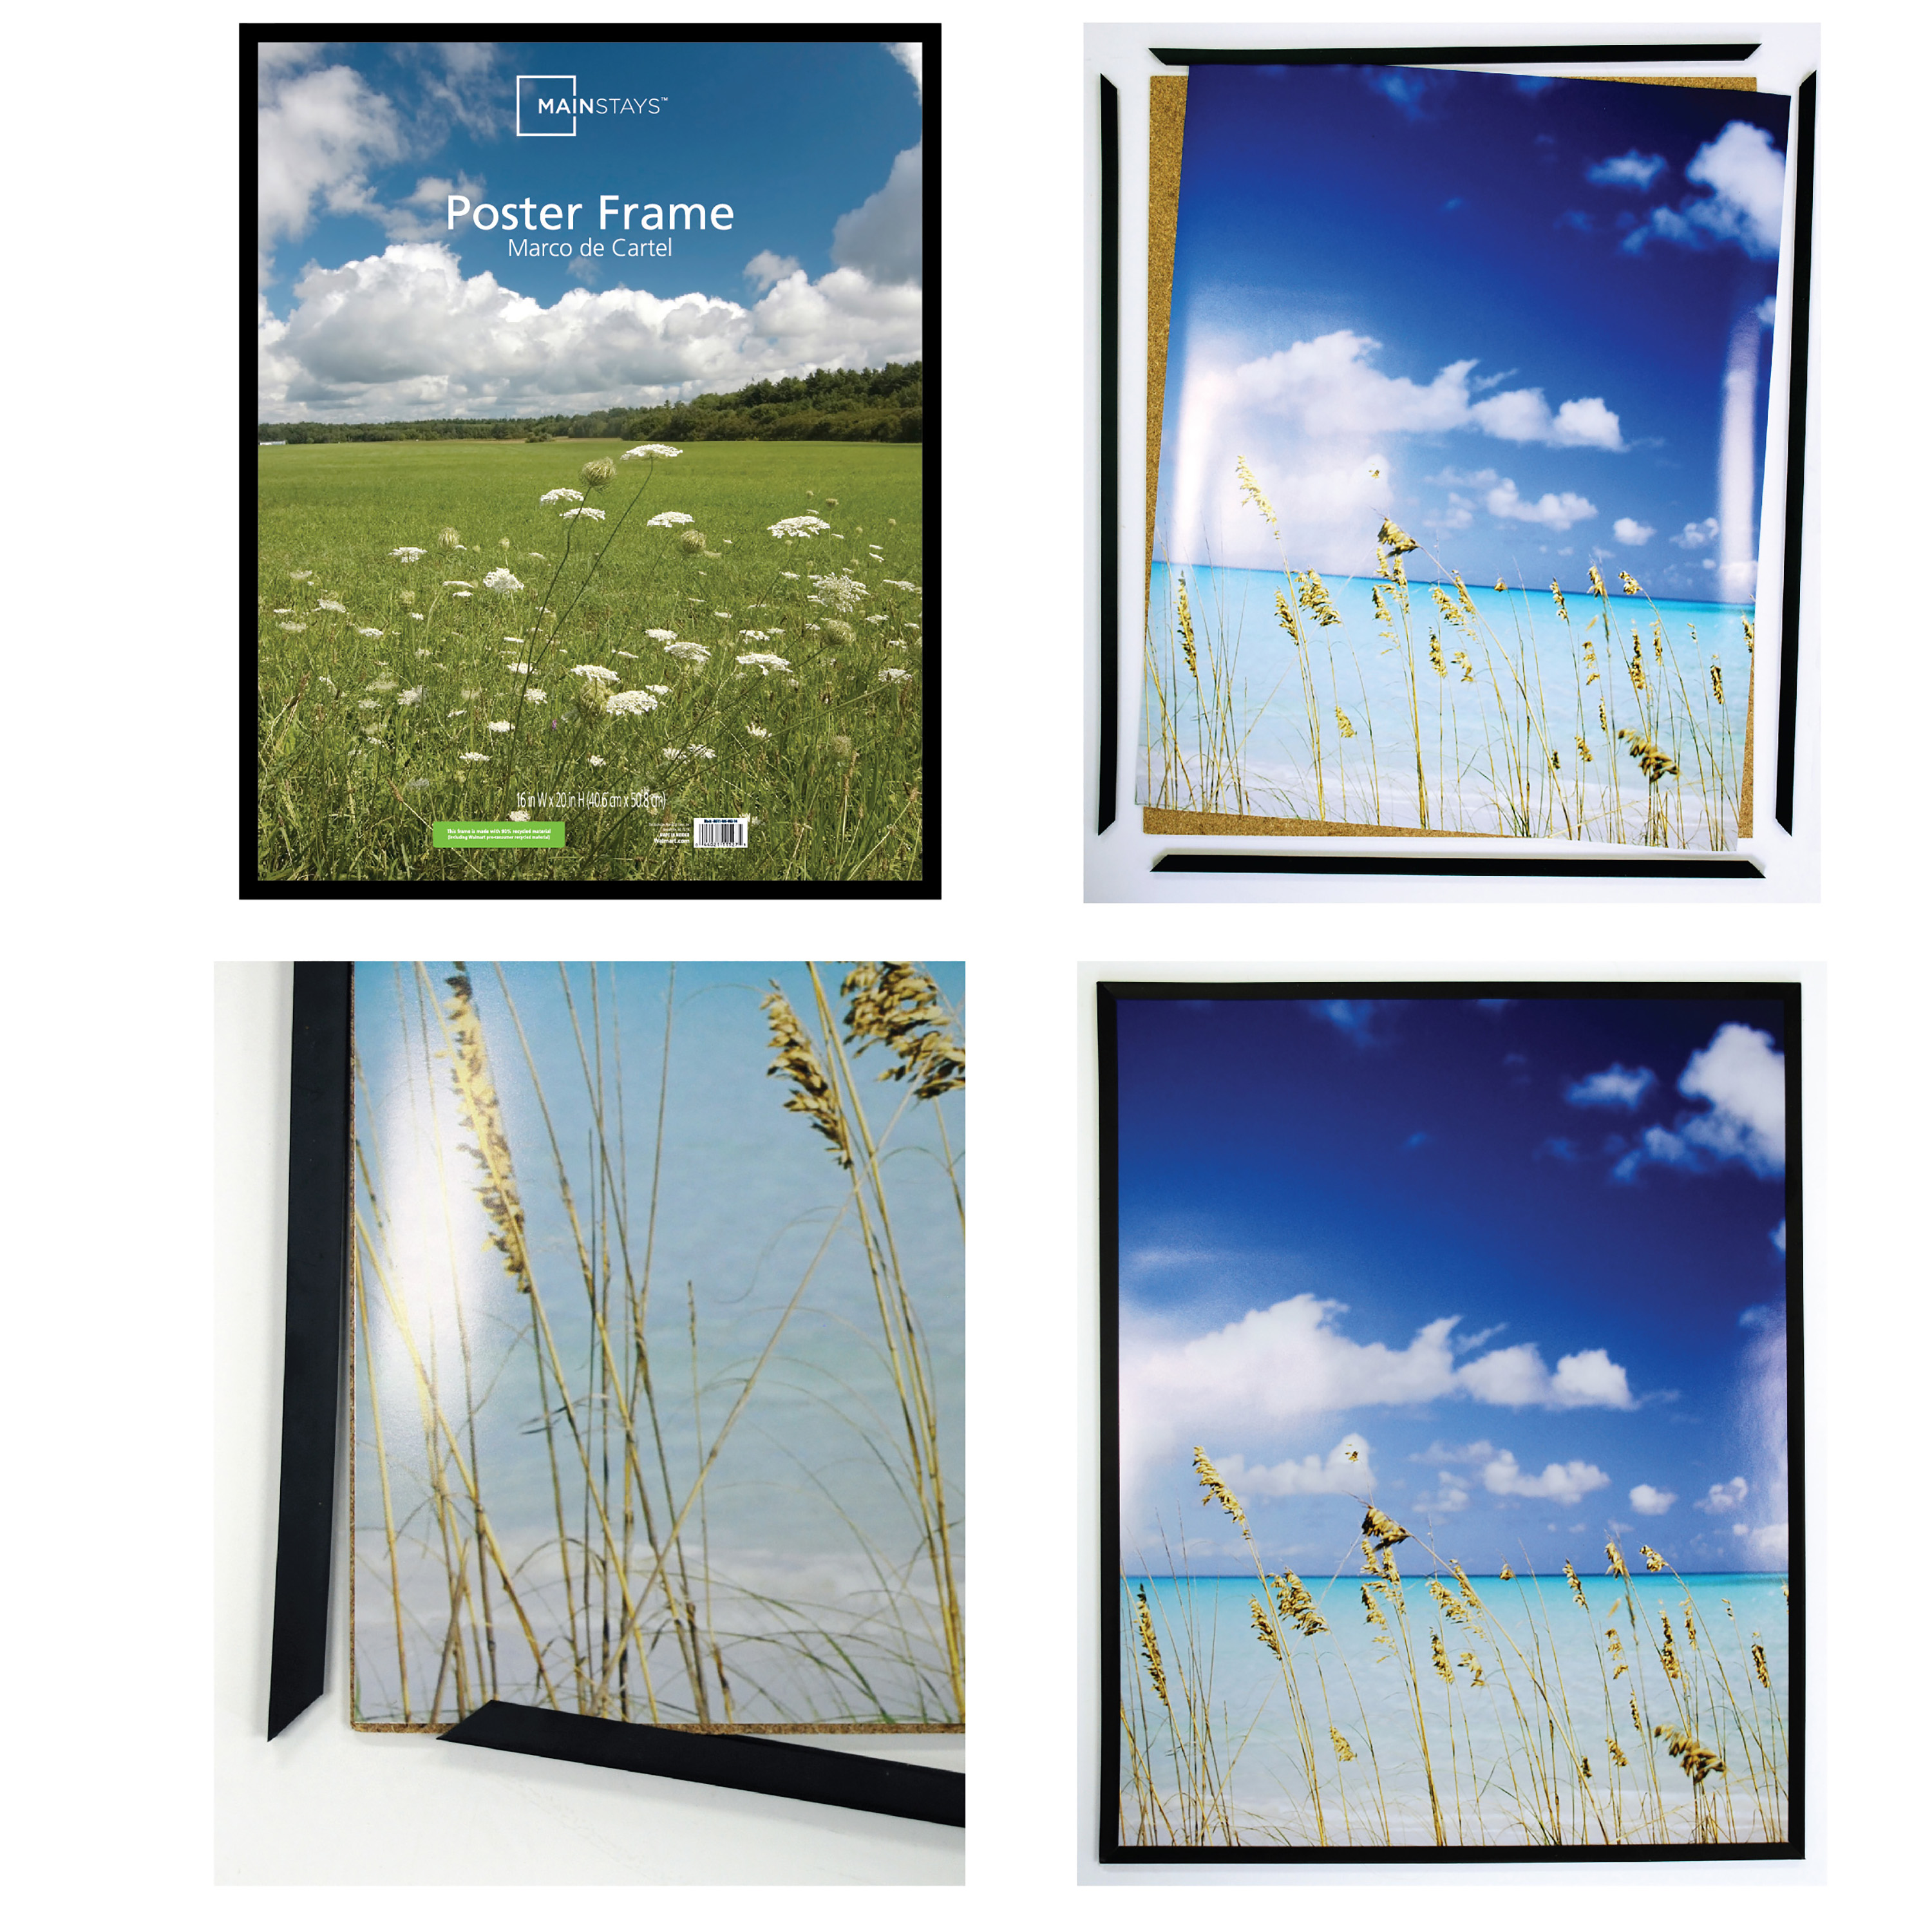 Mainstays 16 X 20 Basic Poster And Picture Frame Black Set Of 2